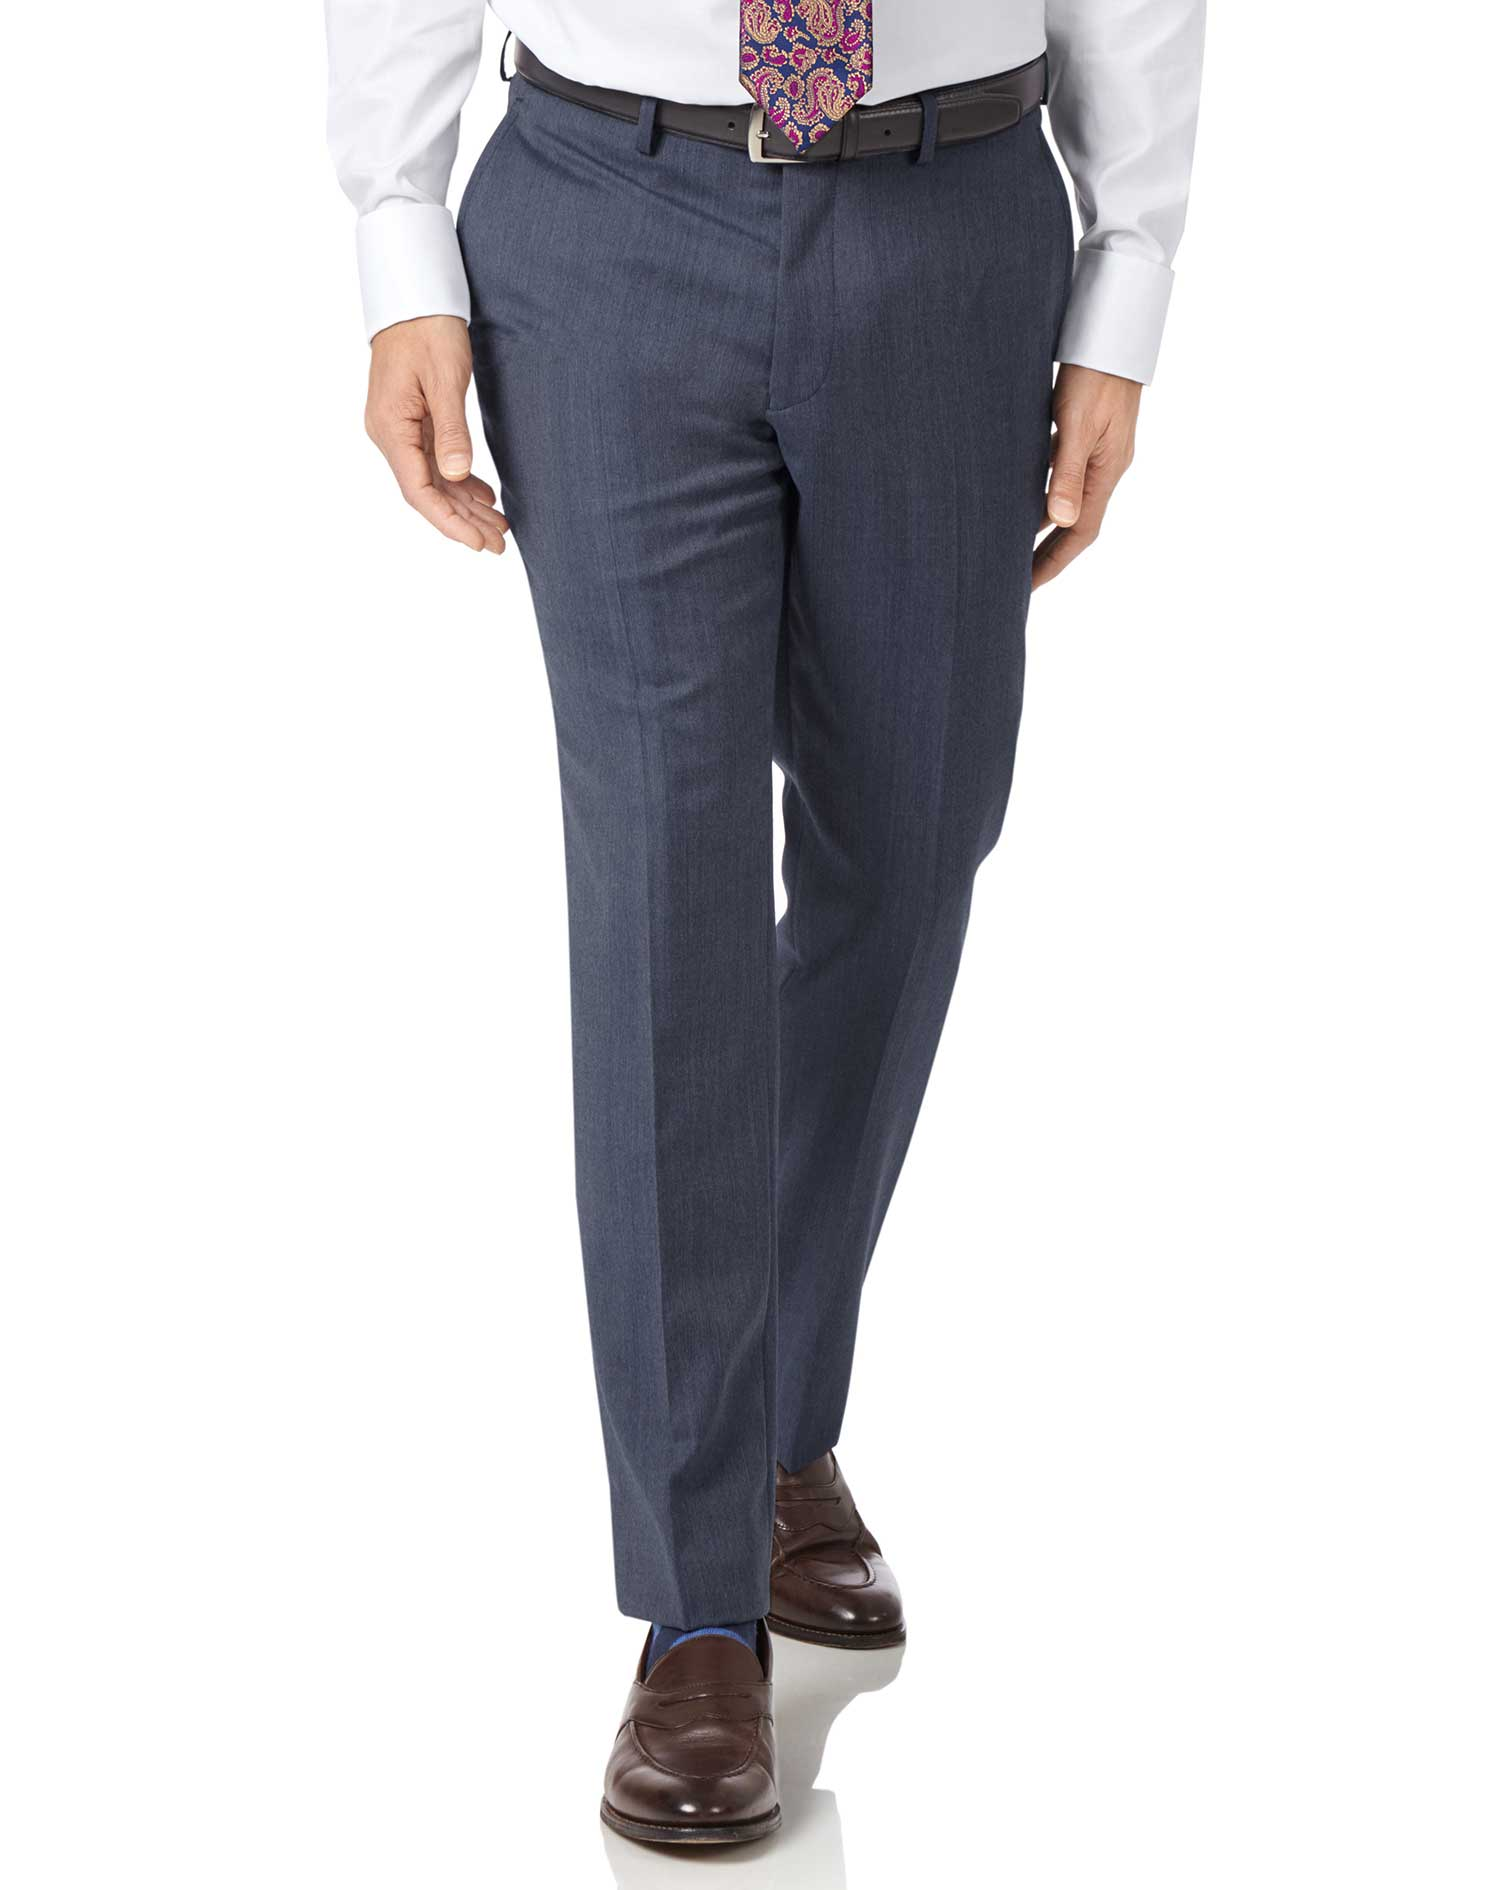 Light Blue Slim Fit Twill Business Suit Trousers Size W36 L34 by Charles Tyrwhitt